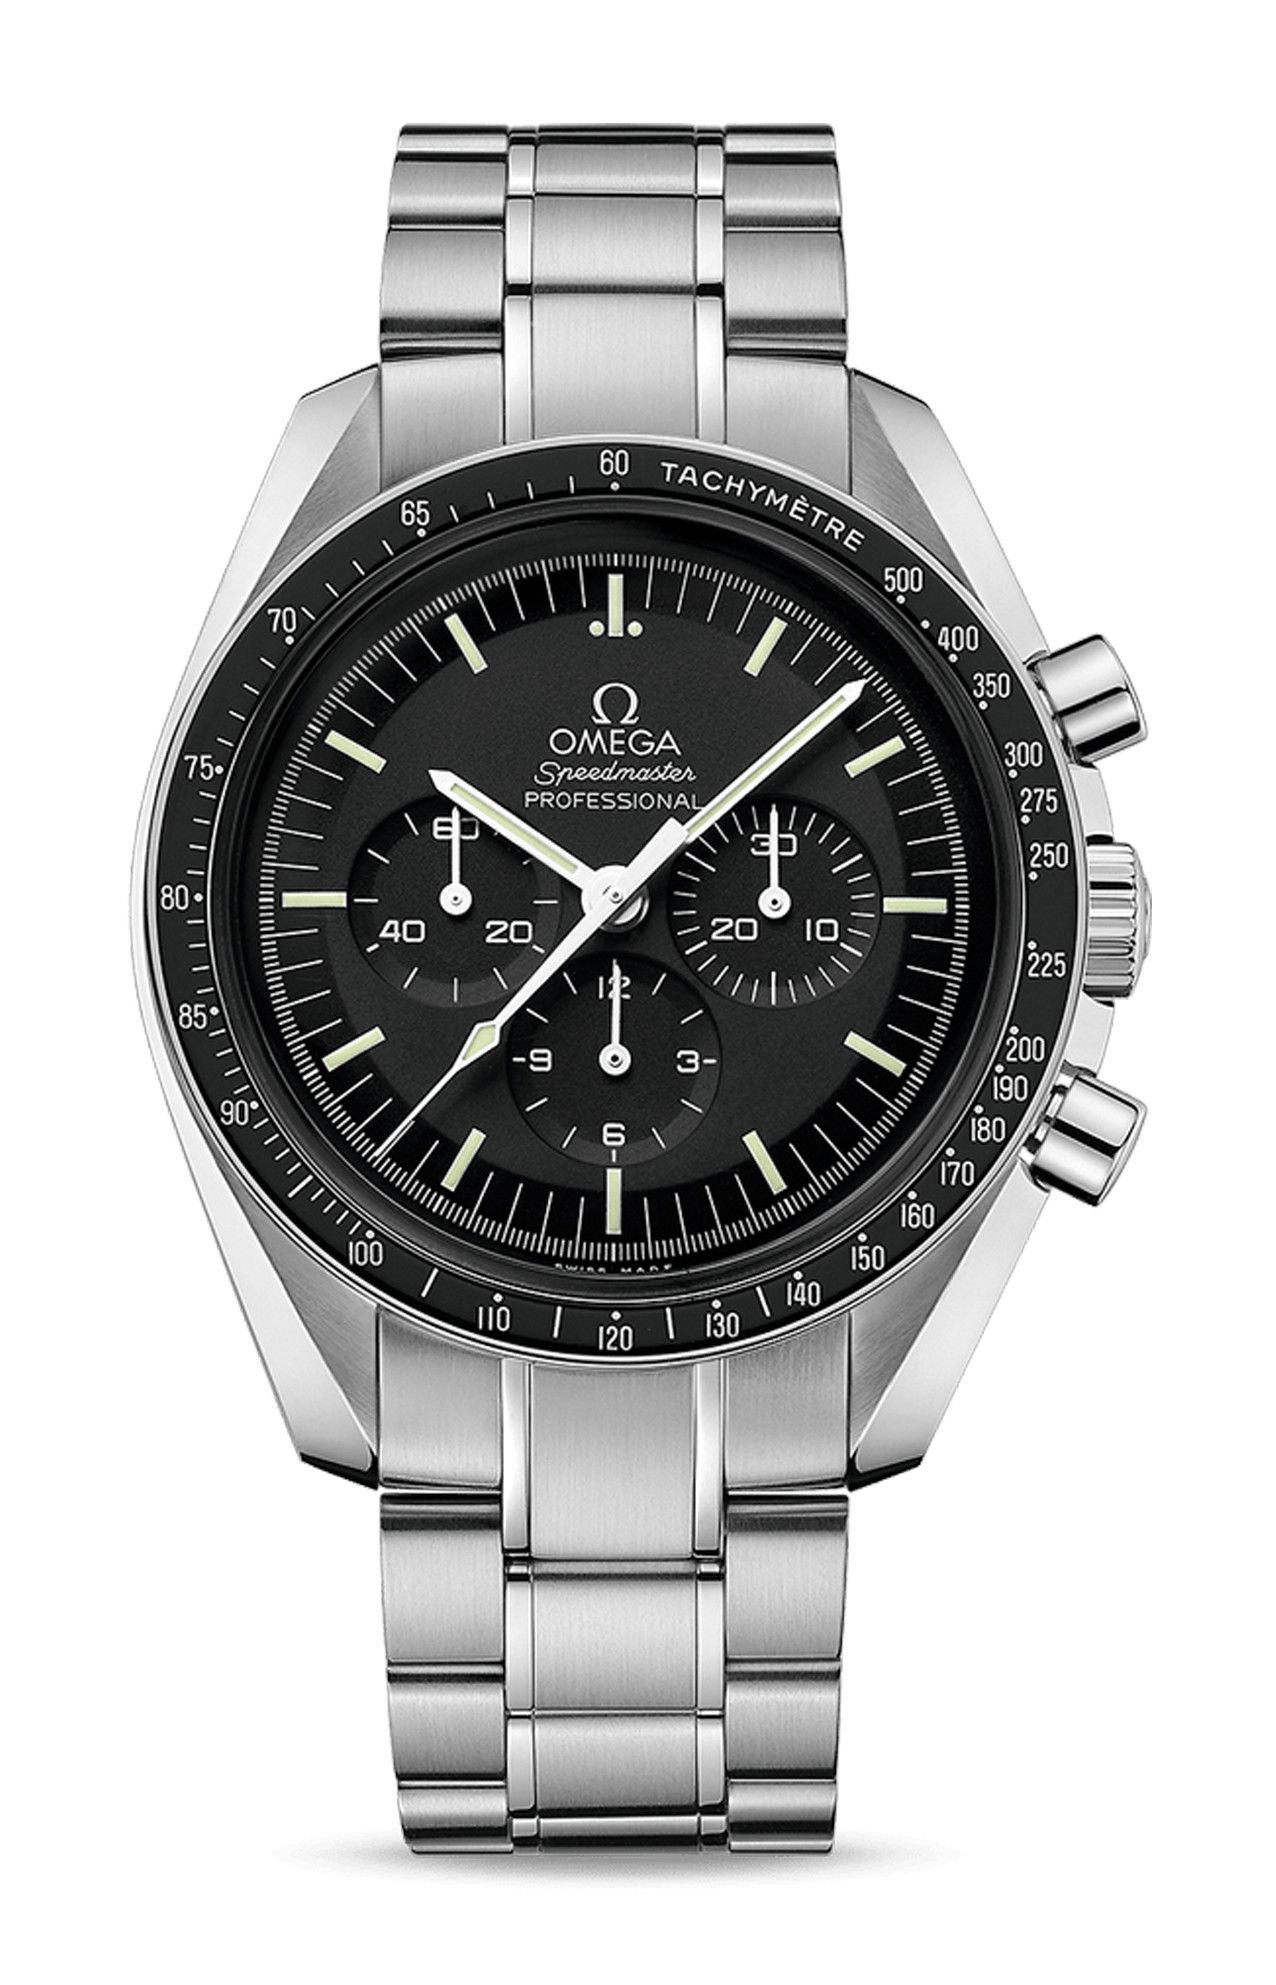 MOONWATCH PROFESSIONAL CHRONOGRAPH - VETRO ESALITE - 311.30.42.30.01.005